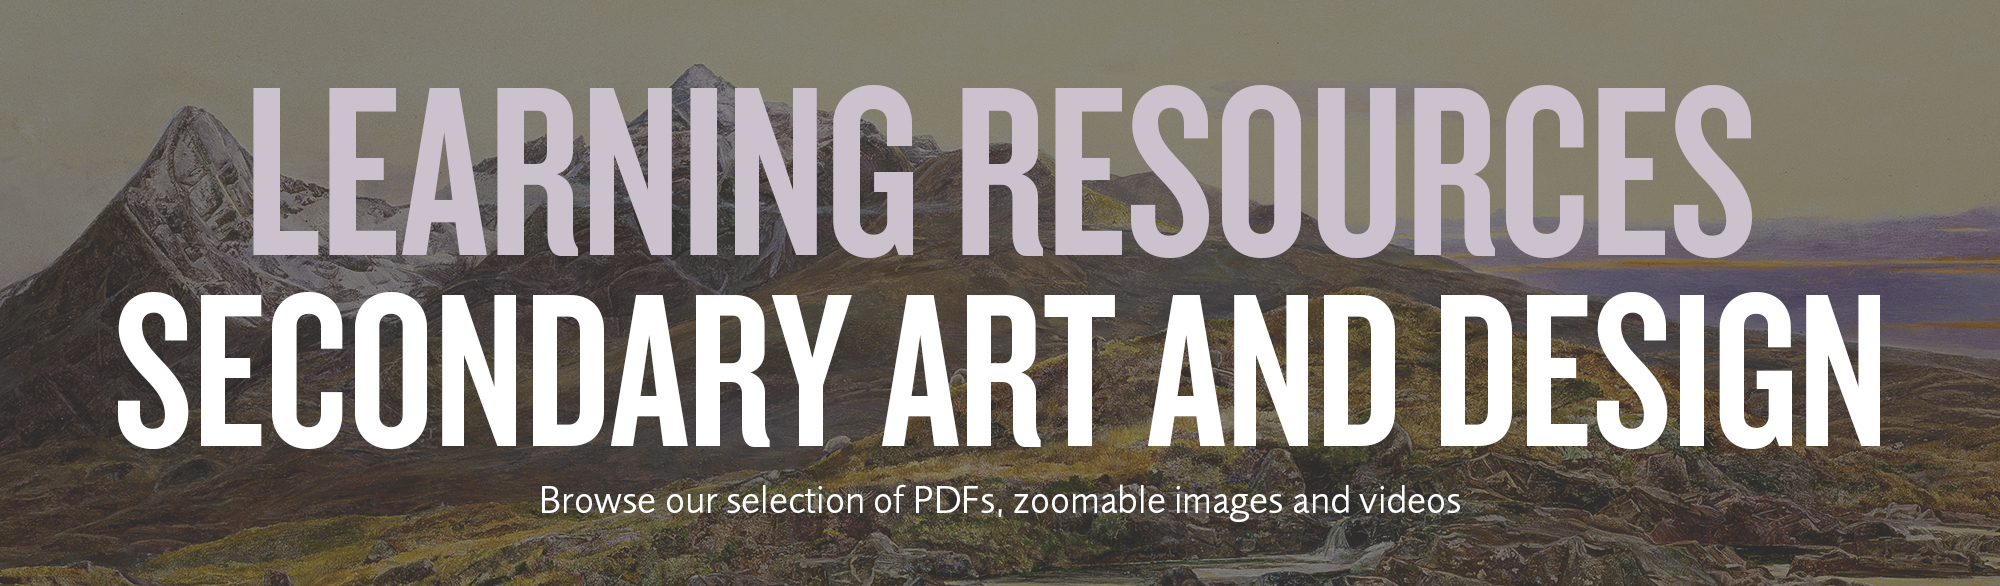 Learning resource secondary art and design